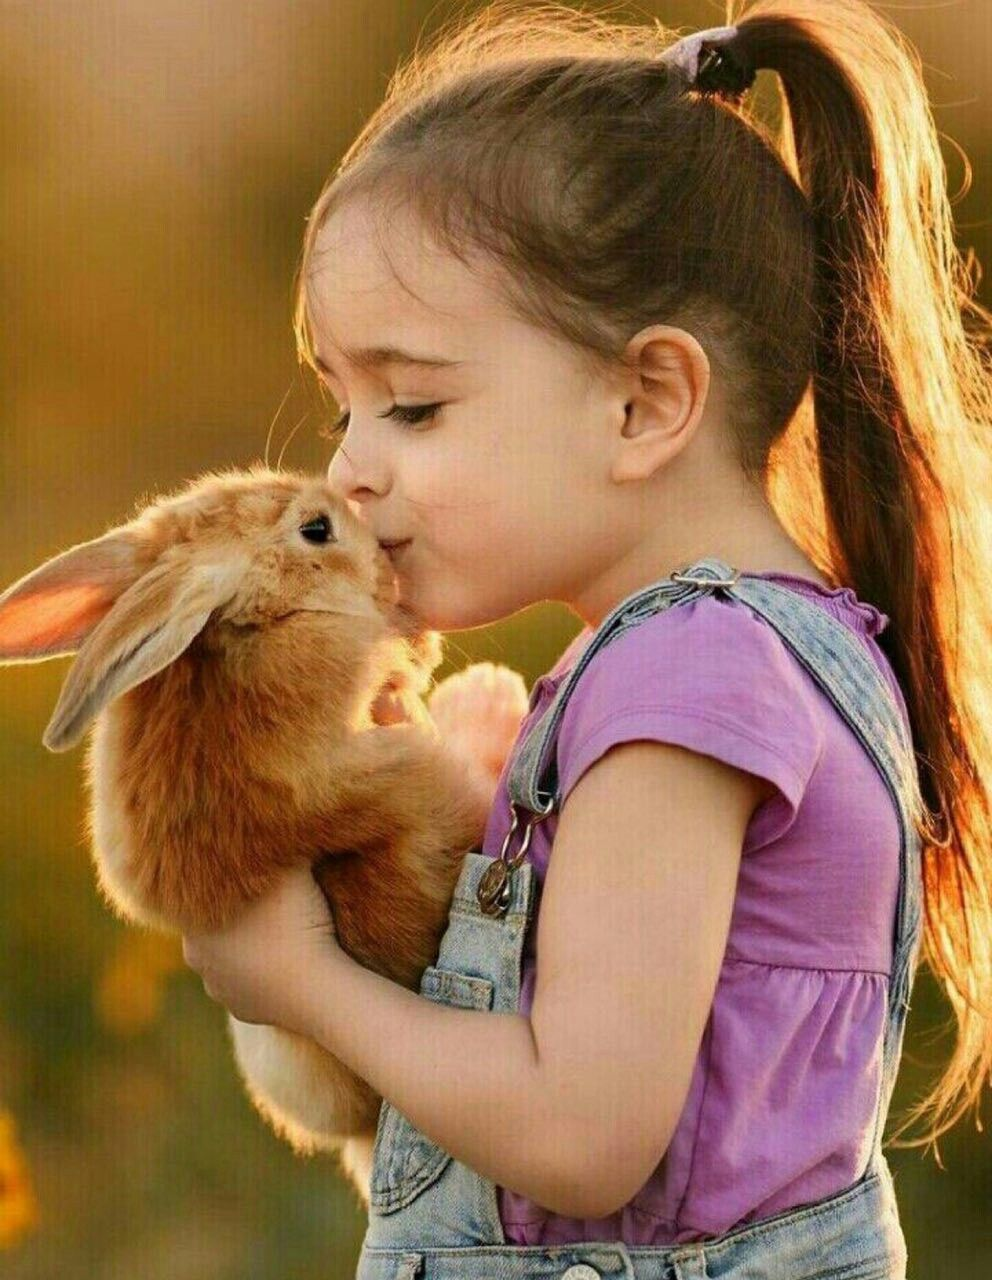 sweet little girl and bunny cute and or funny